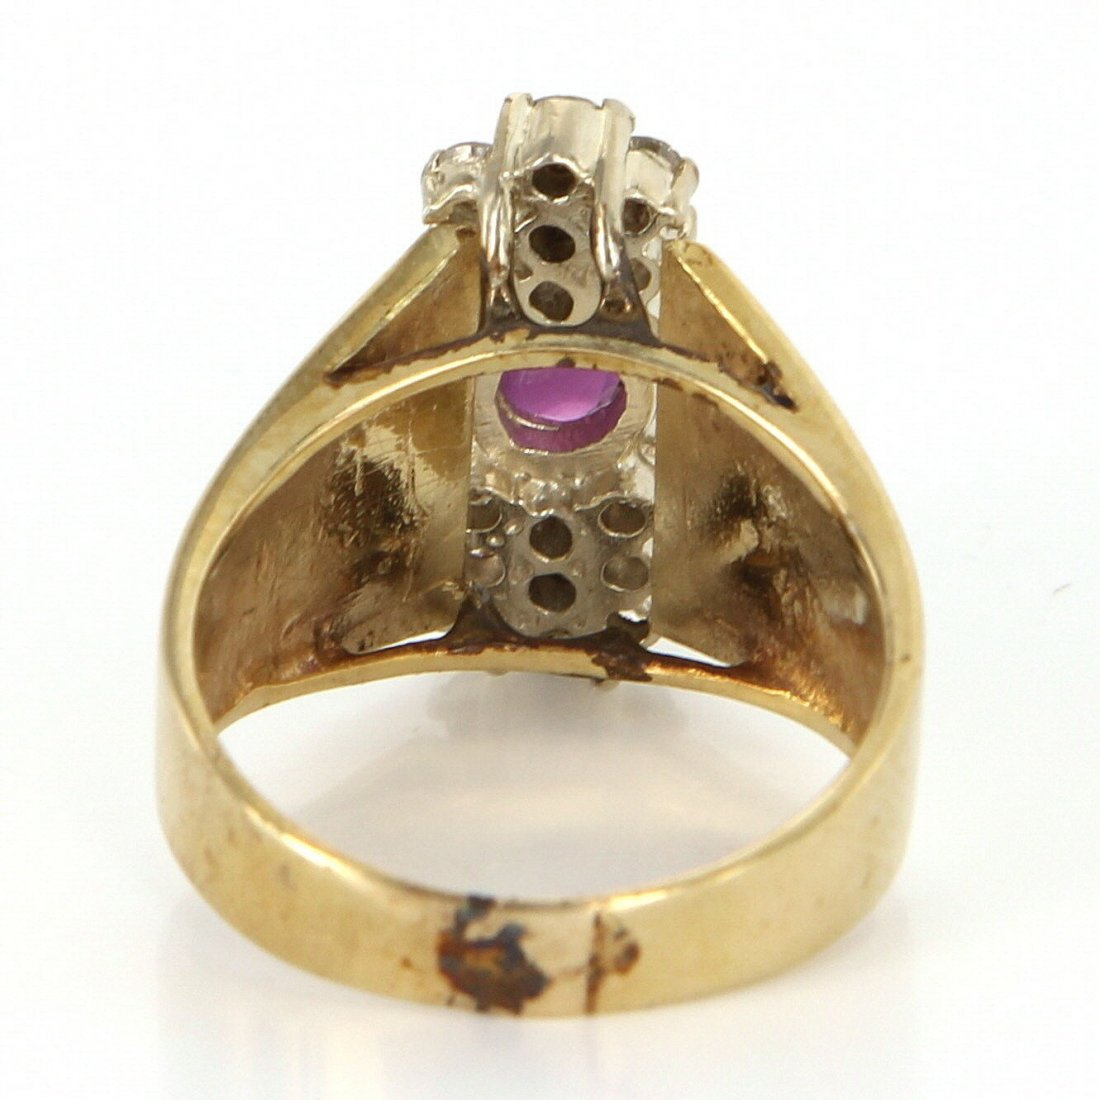 Vintage 14 Karat Yellow Gold Diamond Ruby Cocktail Ring - 4